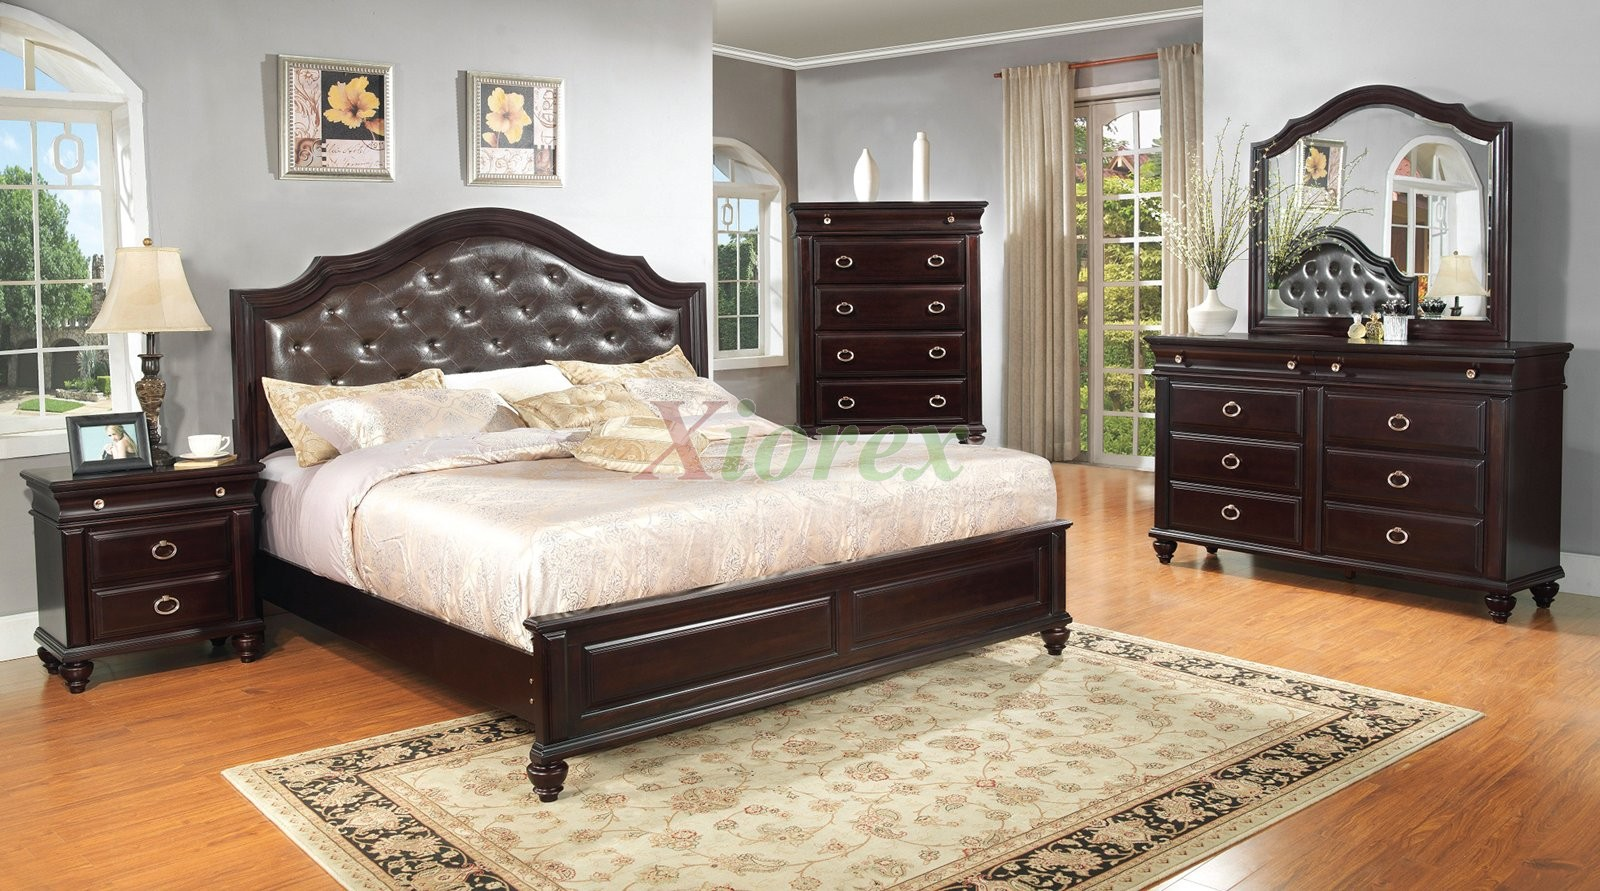 Bed headboard leather - Bed Headboard Leather 22